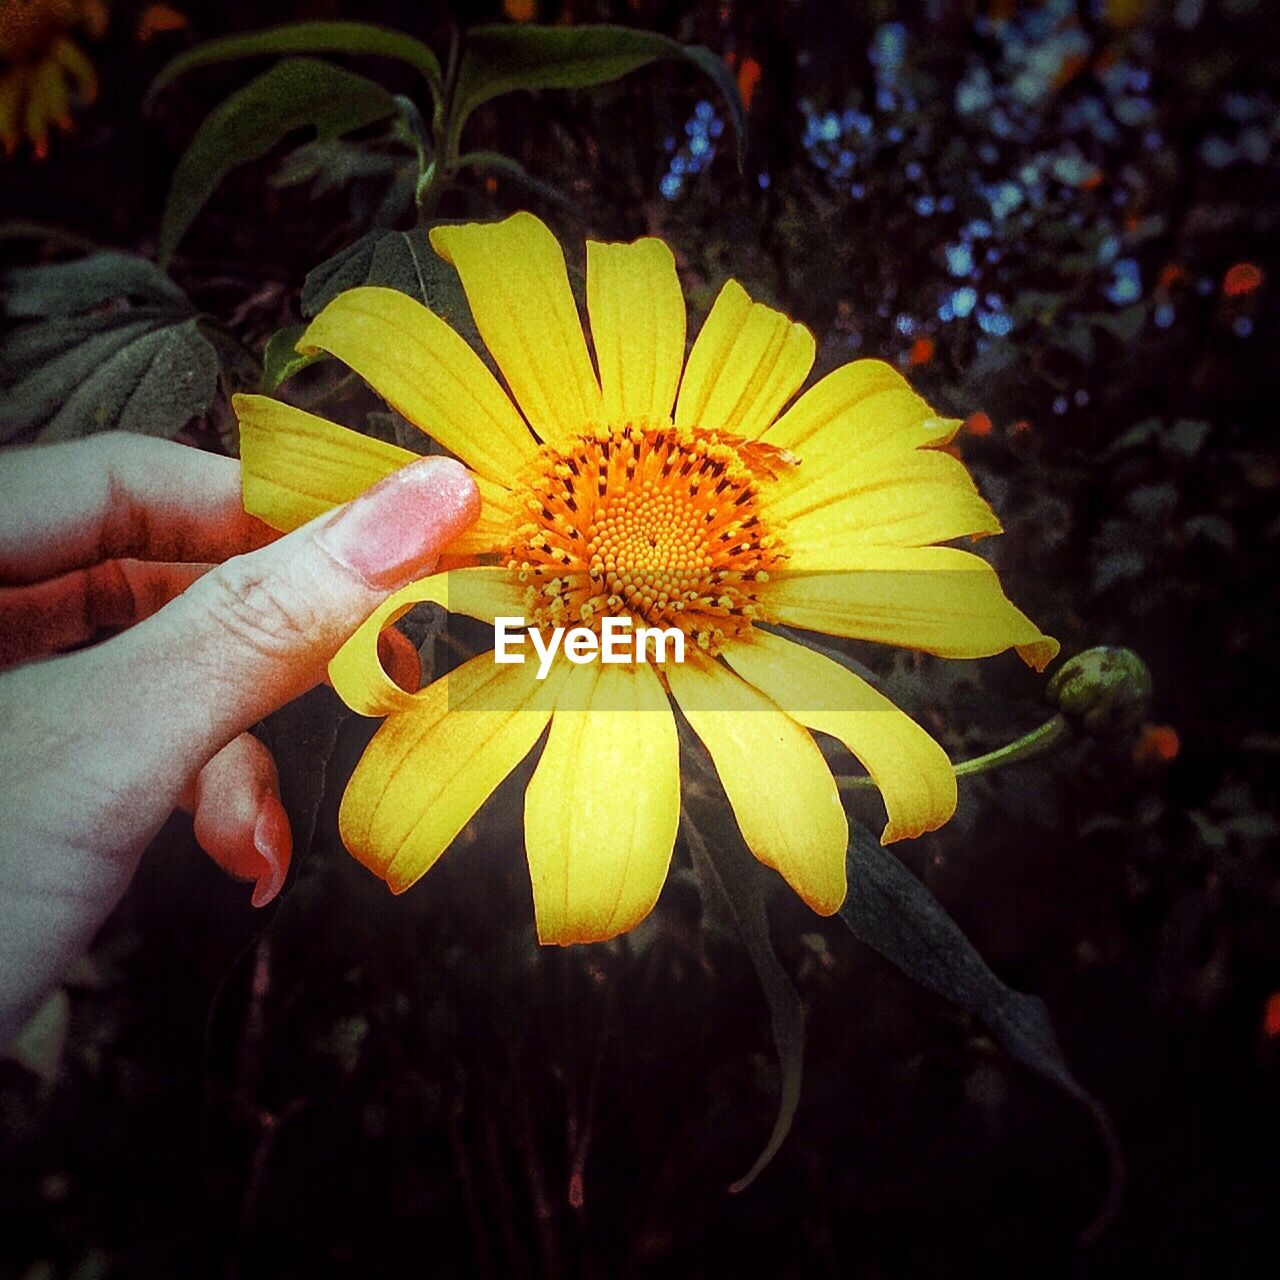 CLOSE-UP OF HAND HOLDING YELLOW FLOWER IN BLOOM